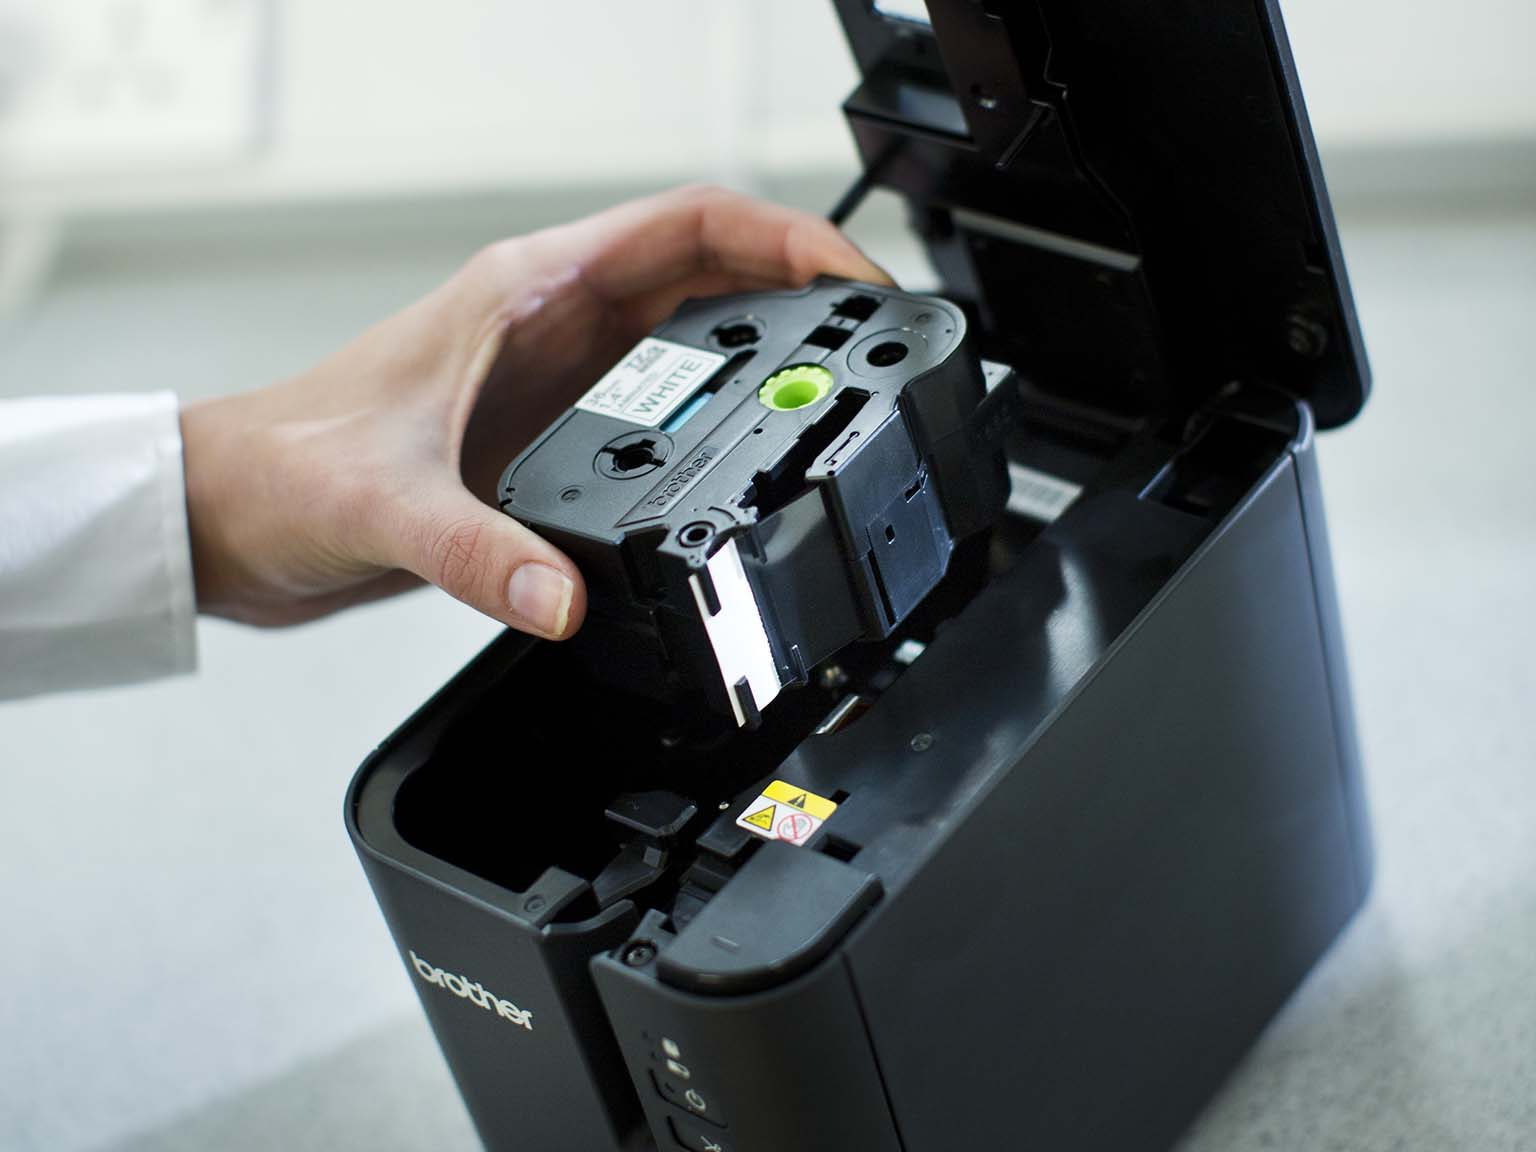 Brother TZe tape cassette being inserted into a PT-P900W label printer